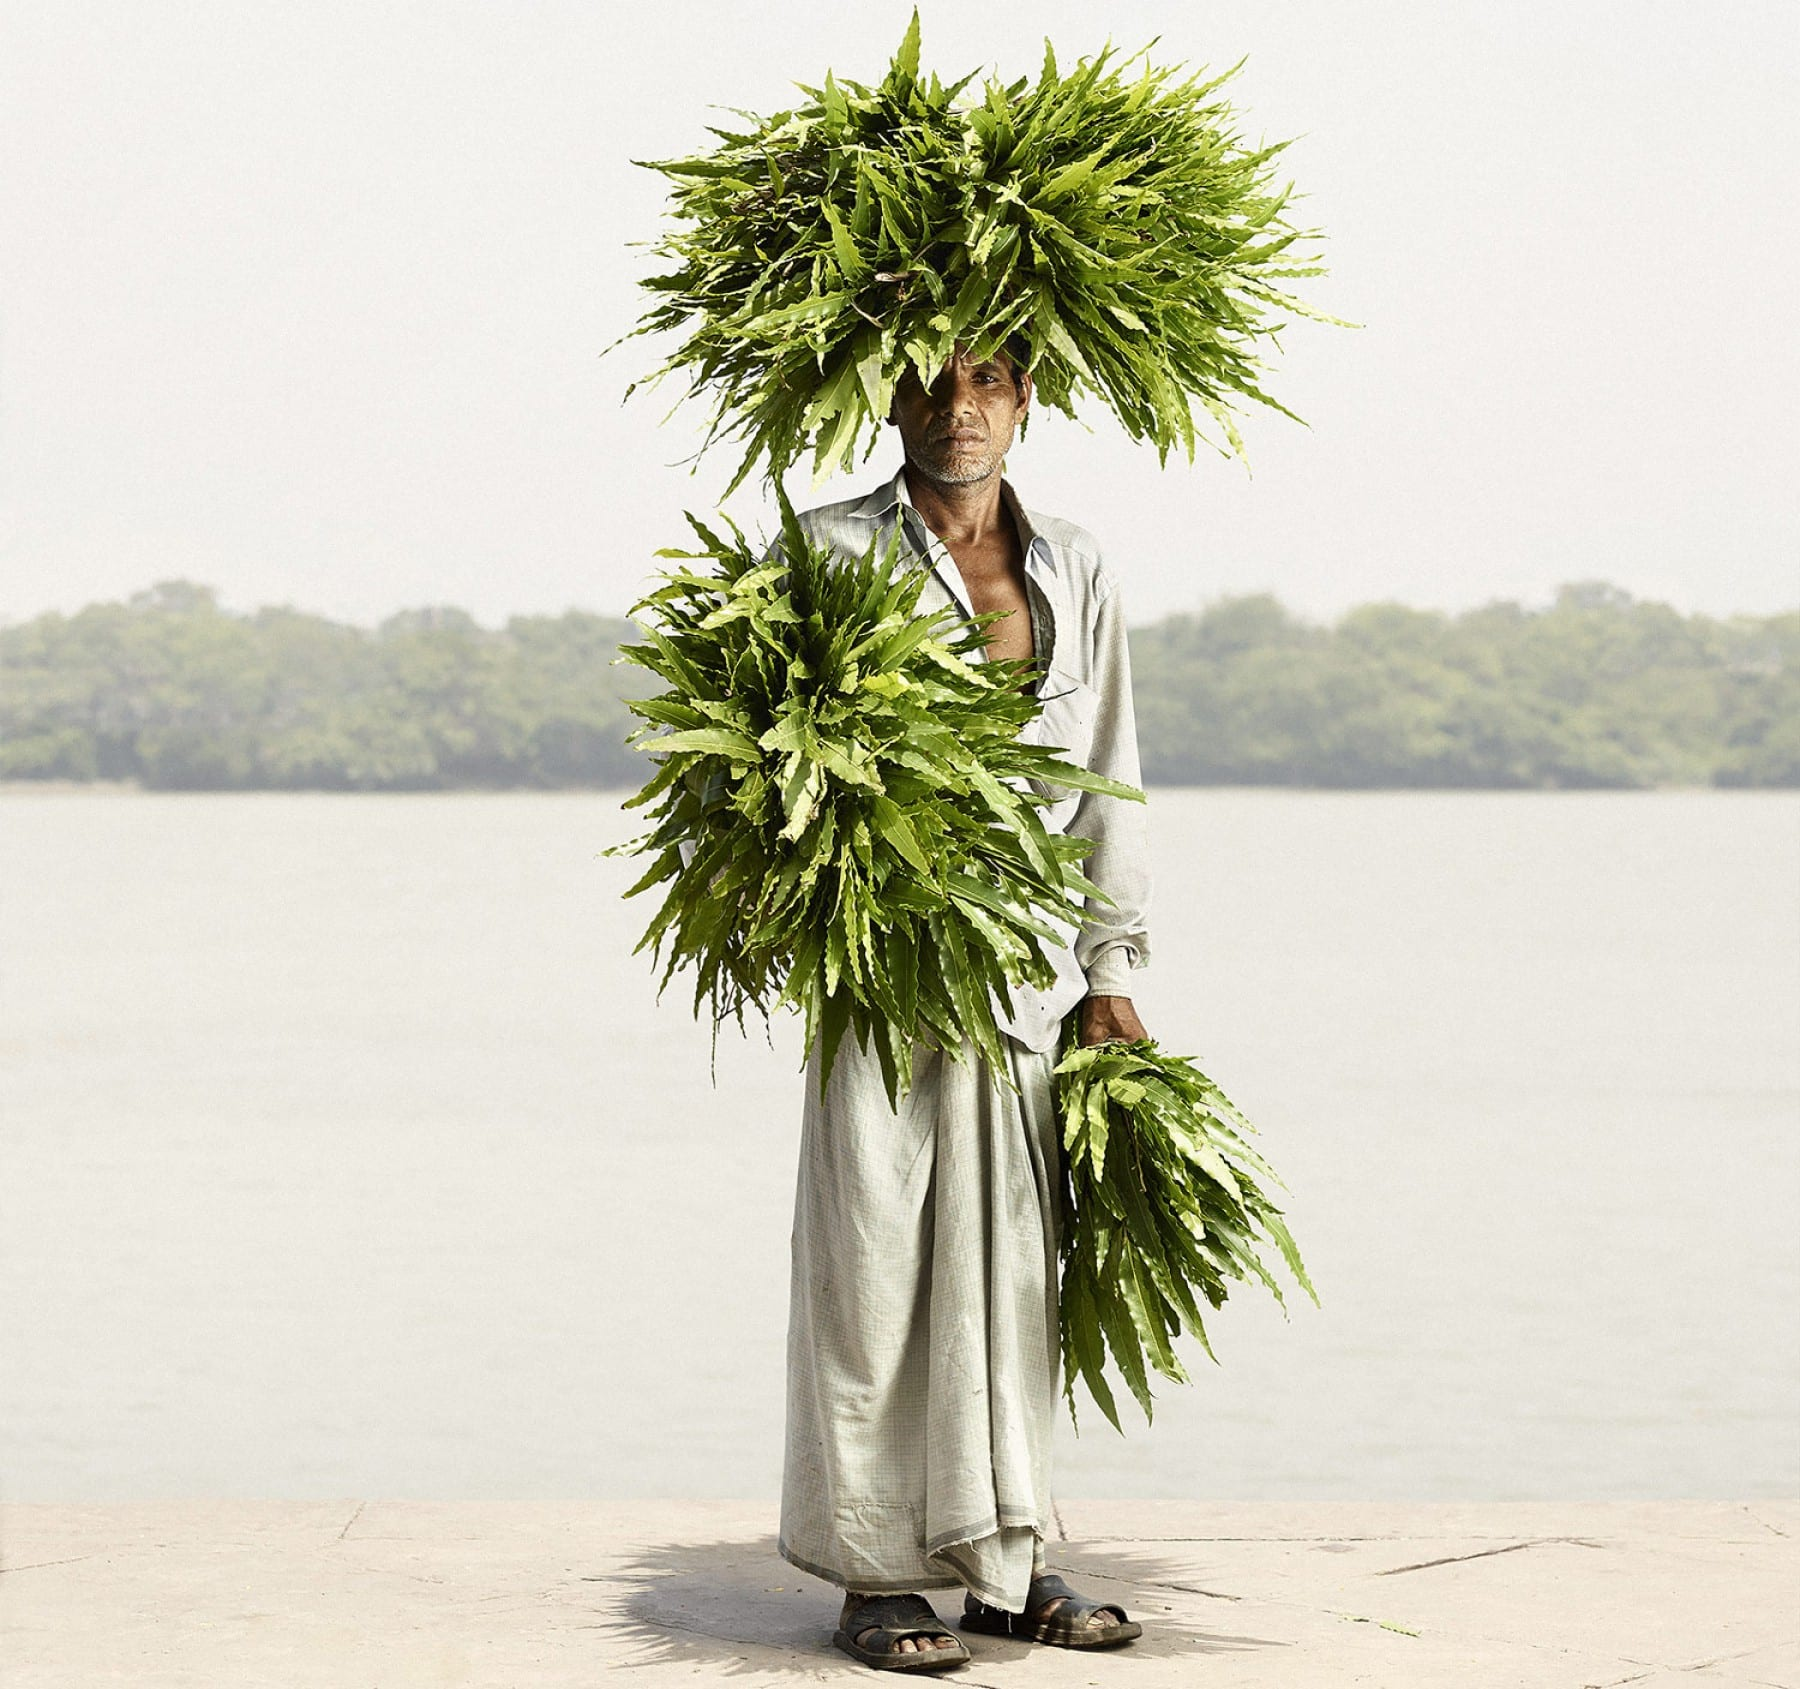 Portrait photography by Ken Hermann, Odhir Gayen with Devdar Leaves, independent photo contest